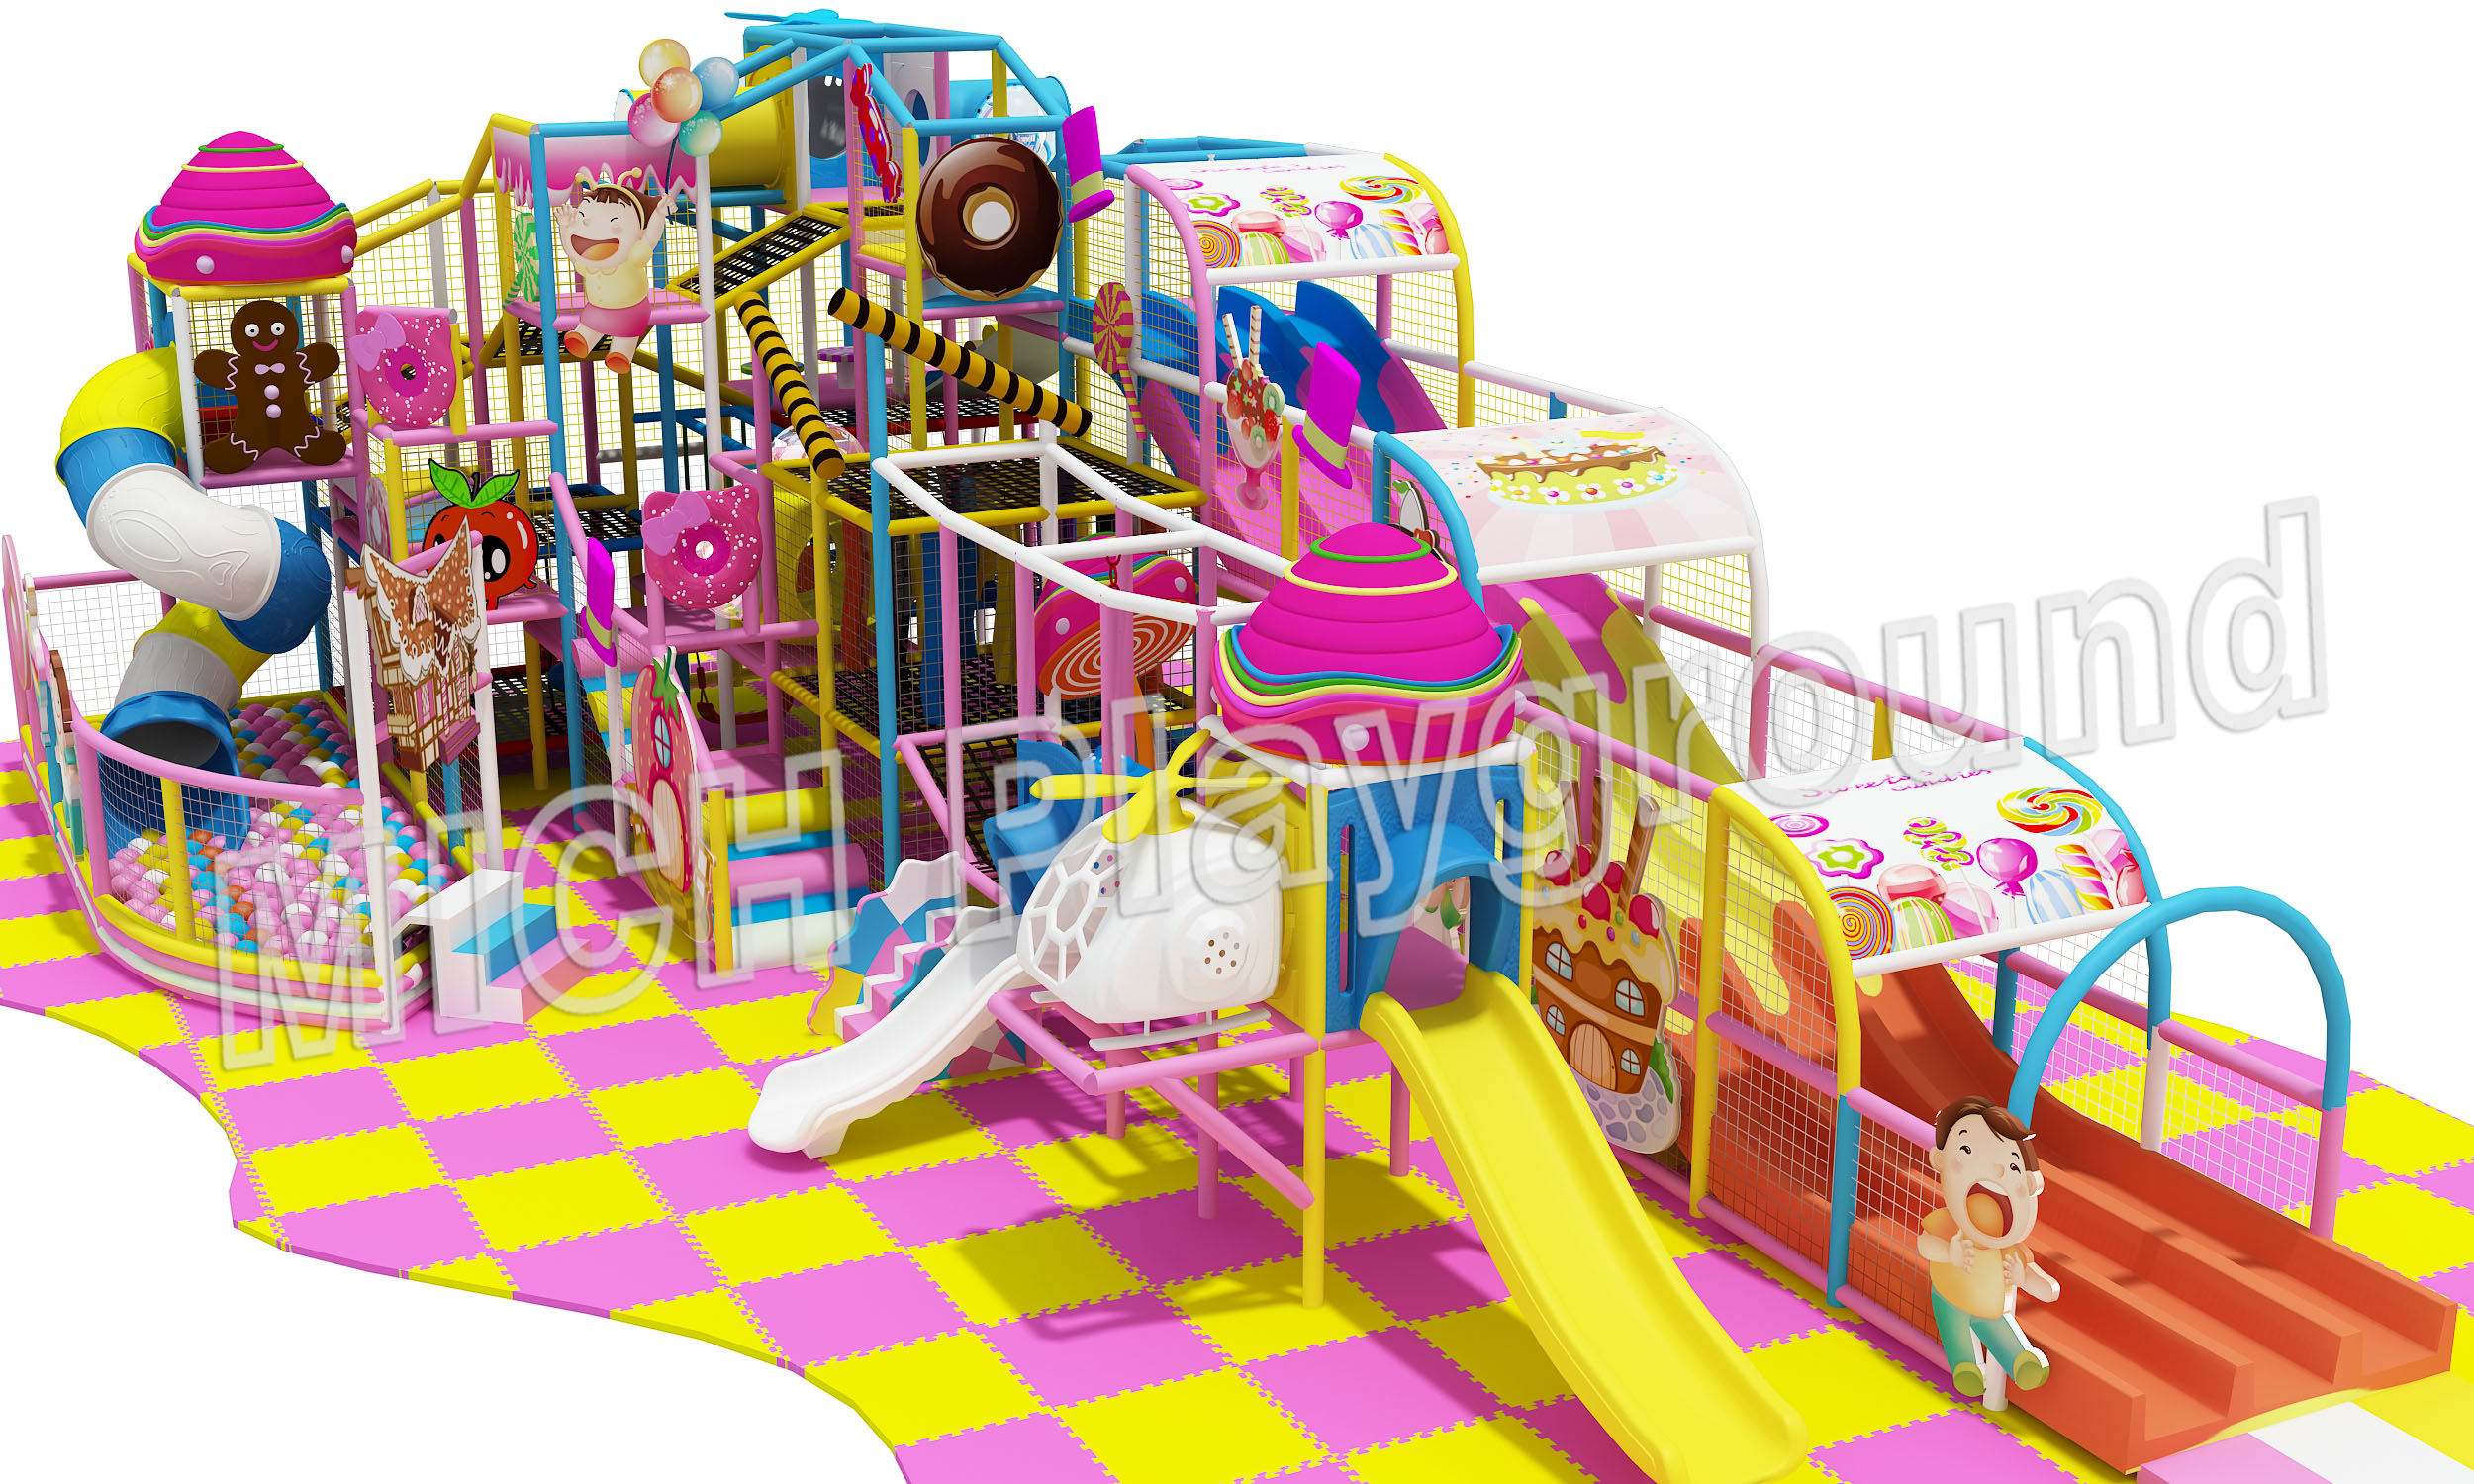 Mich Funny Indoor Amusement Playground 6645A